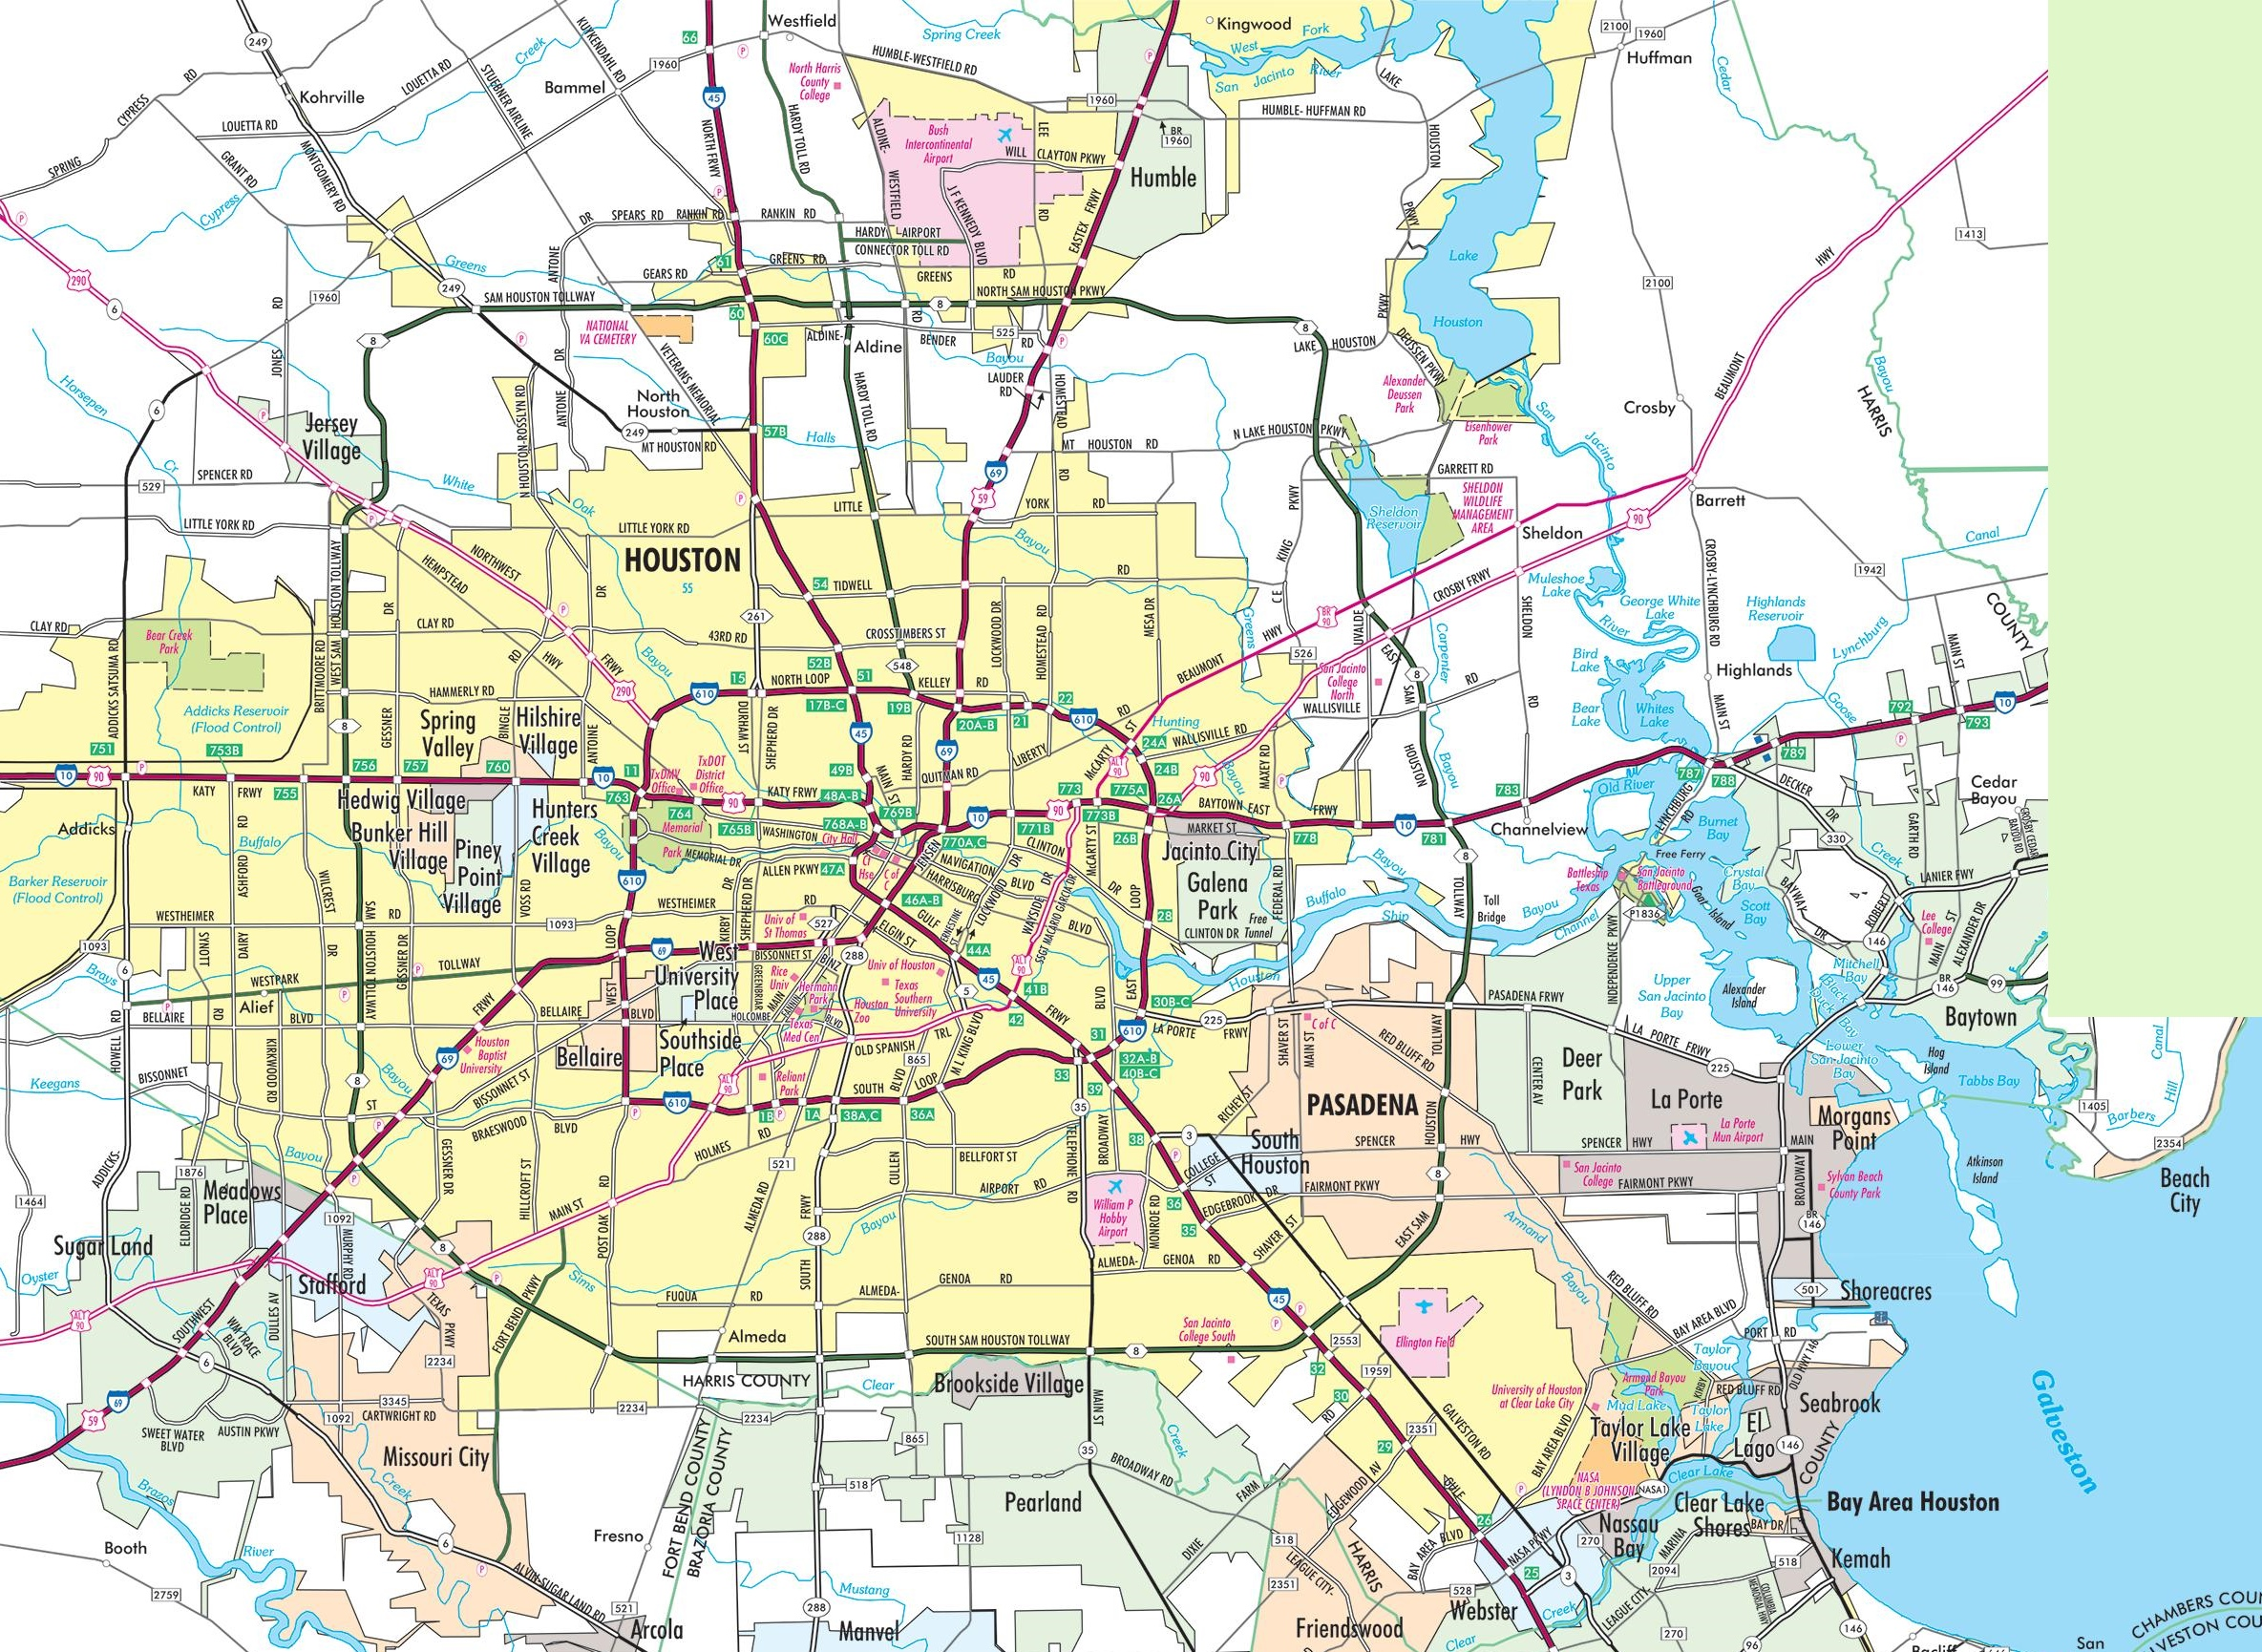 Houston Maps Texas US Maps Of Houston - Map of houston hotels downtown